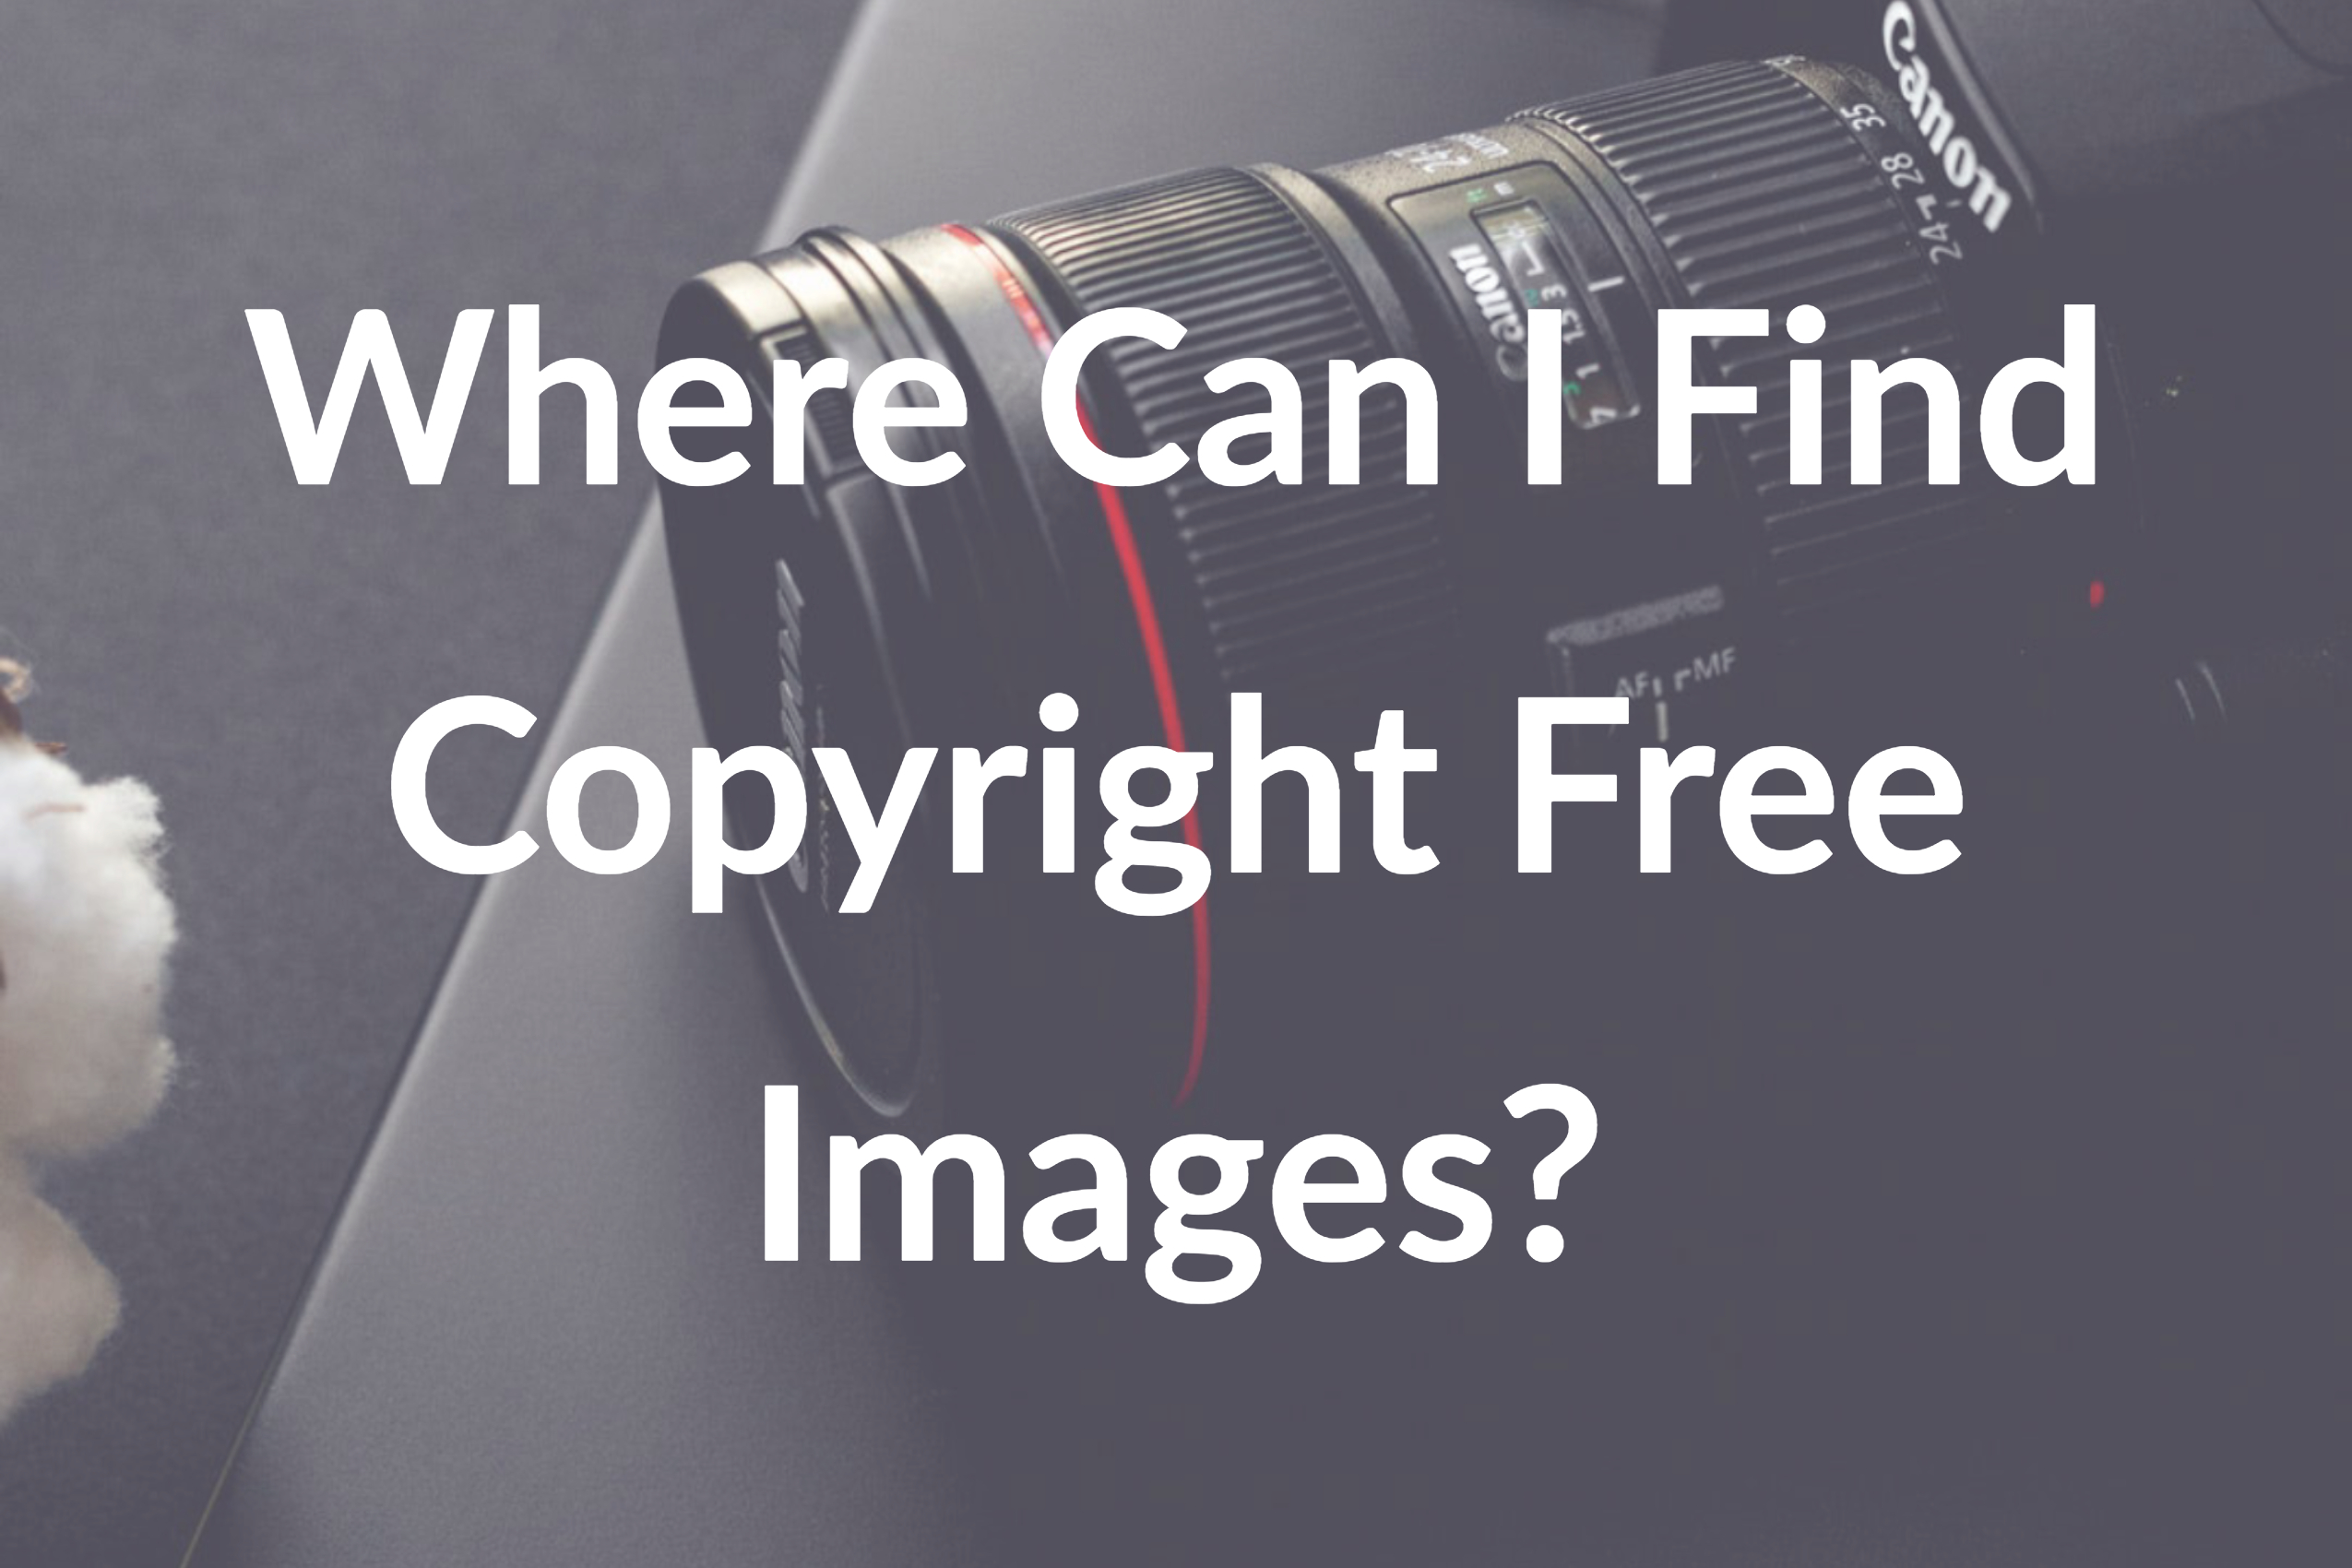 Where Can I Find Copyright Free Images?